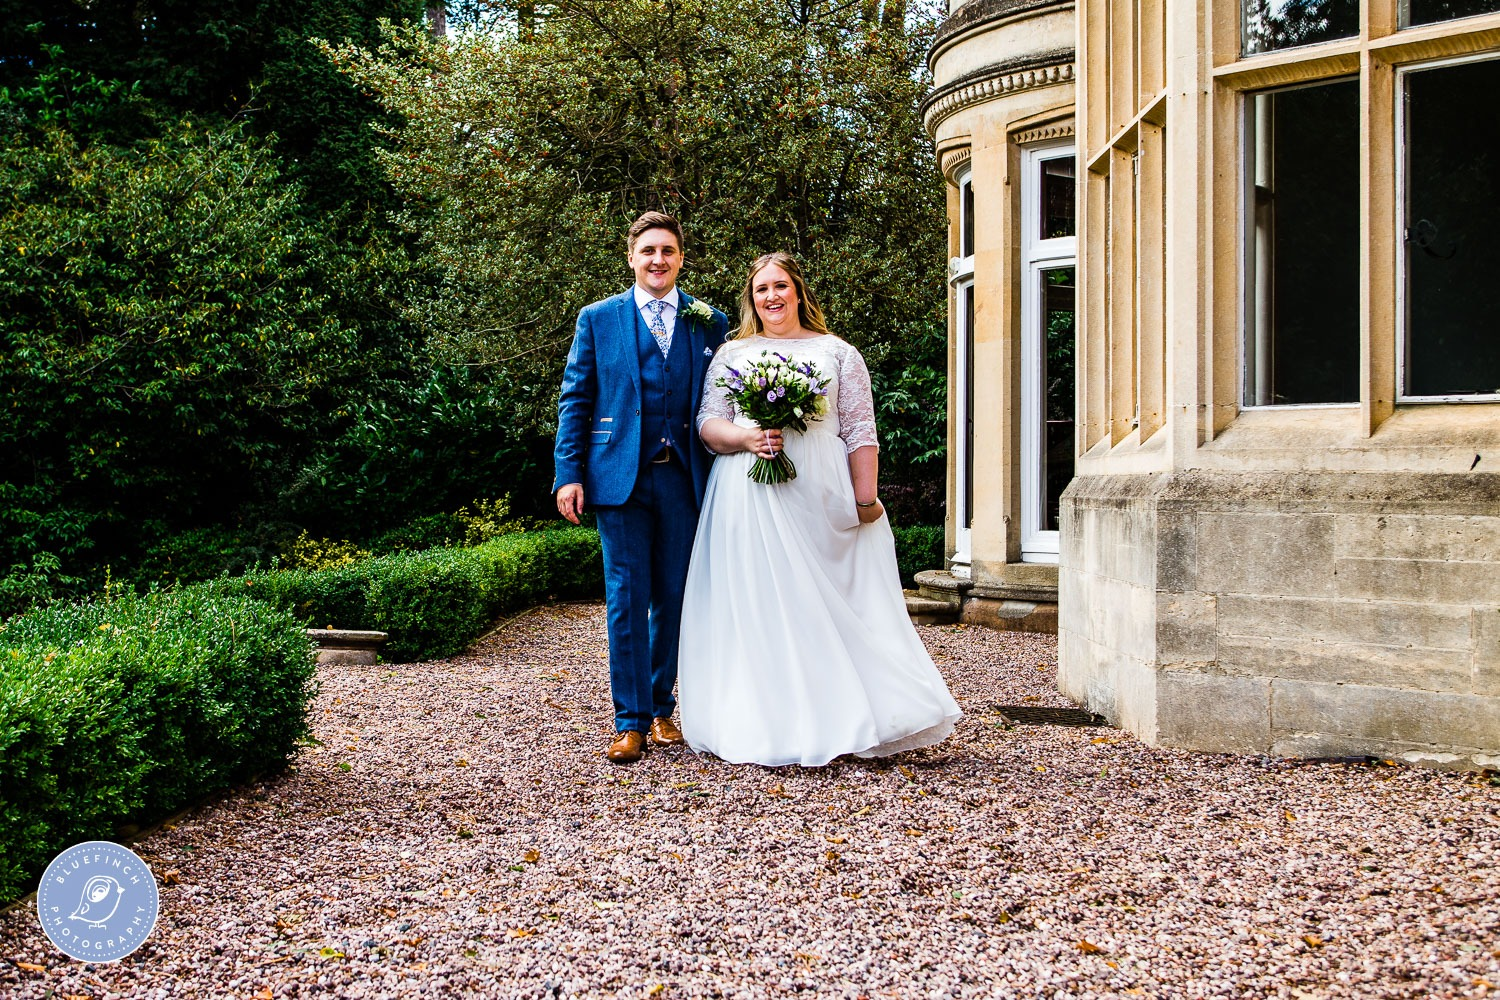 Dan & Lisa's Wedding Photography At Pendrell Hall